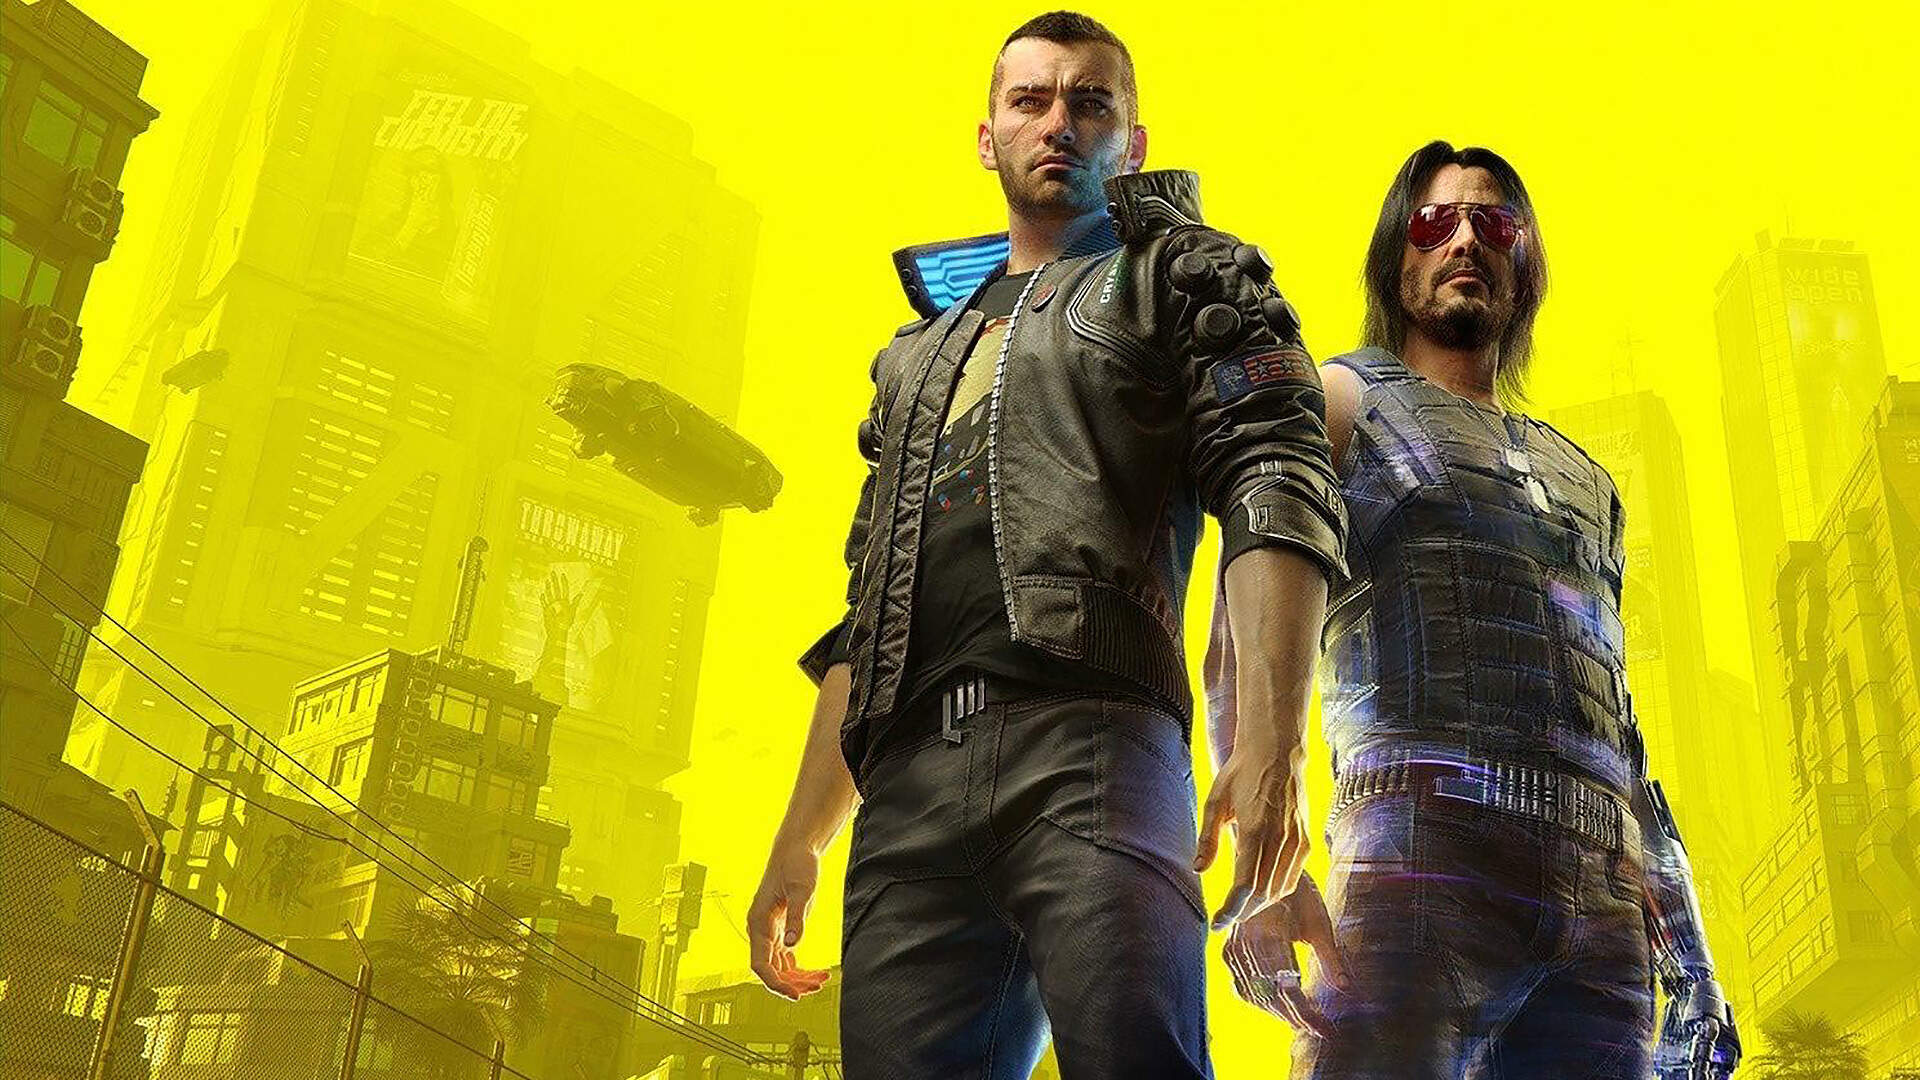 These Are the Movies and TV Shows to Watch Before Playing Cyberpunk 2077